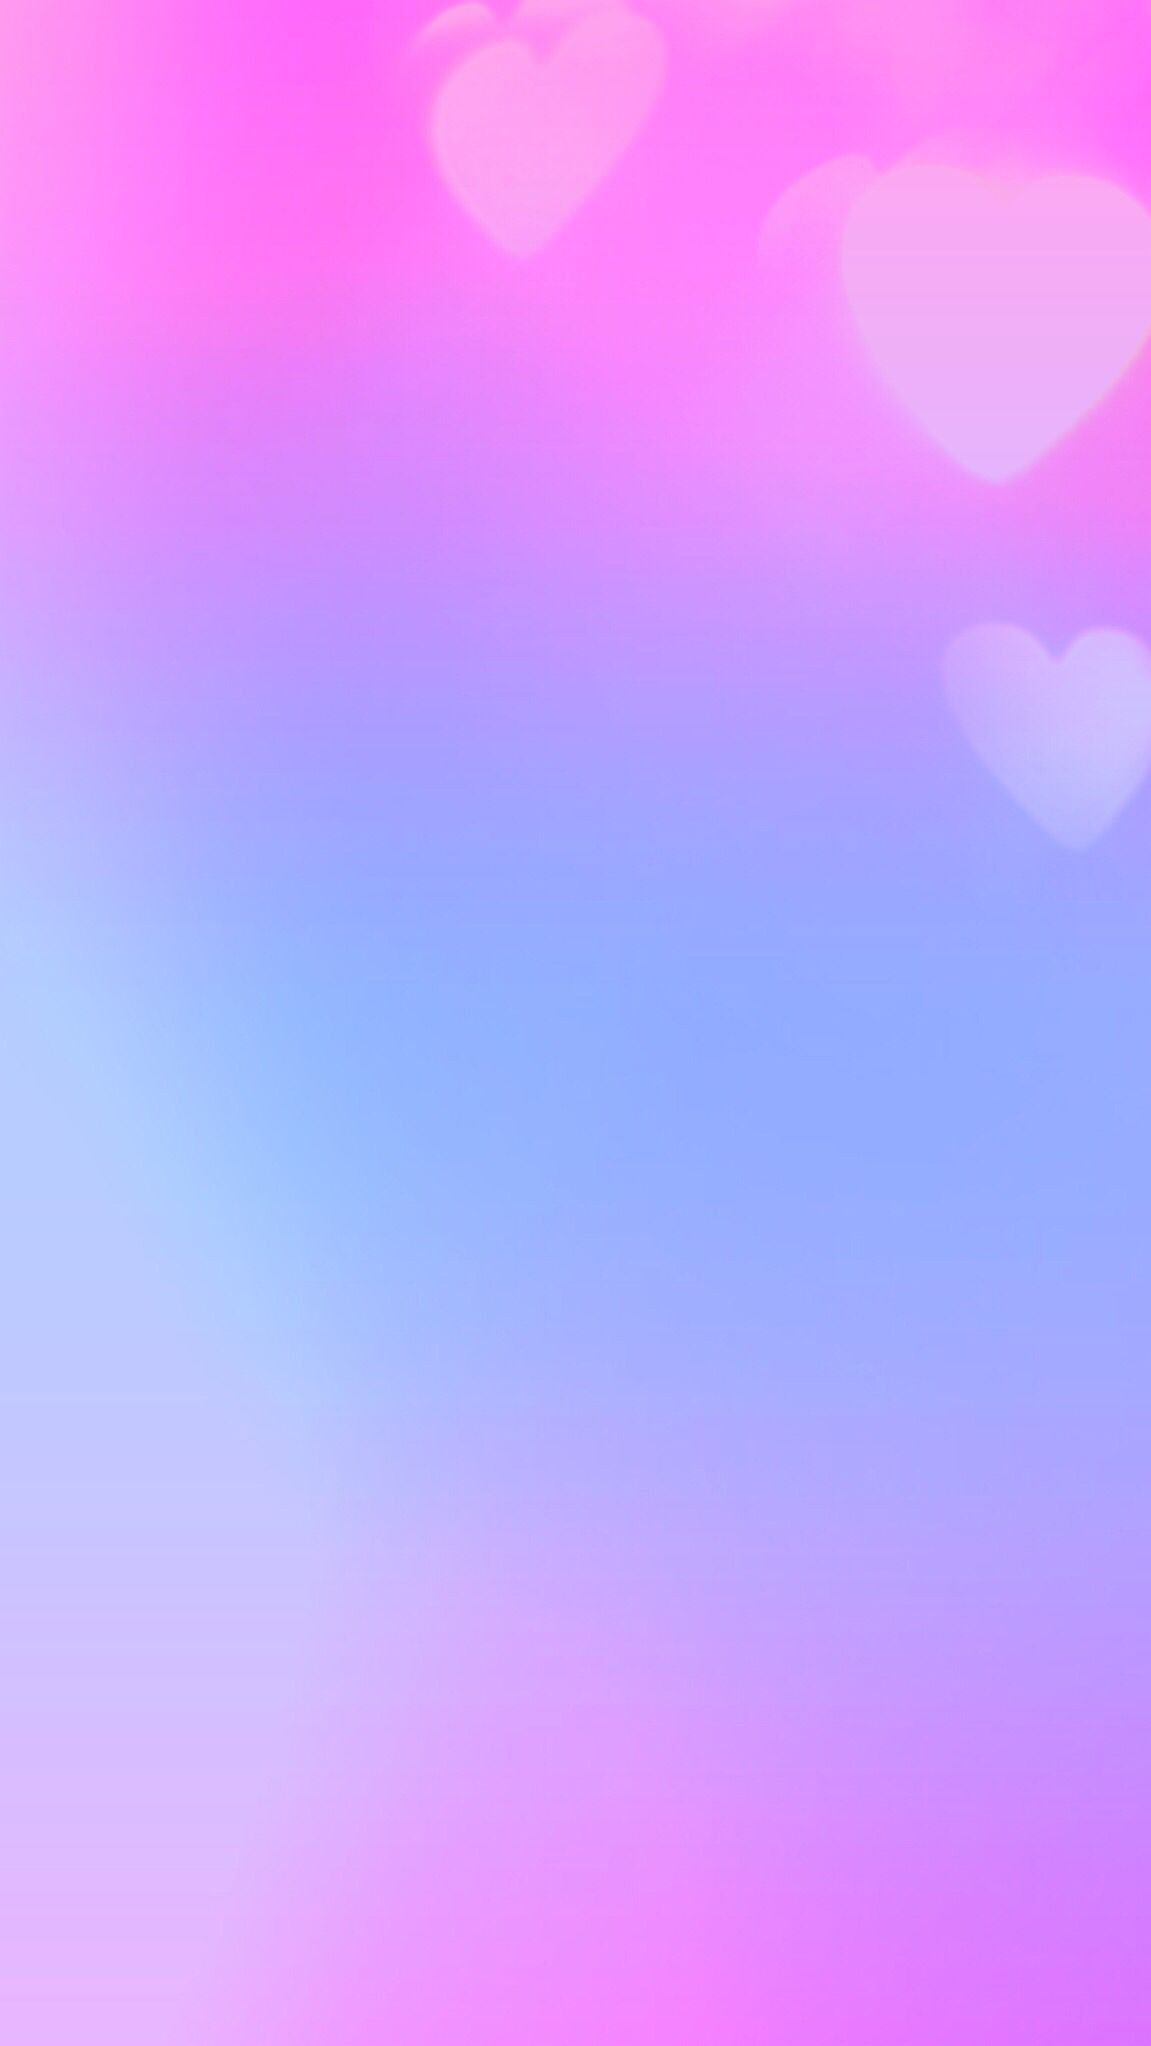 Wallpaper iphone violet - Heart Wallpaper Ombre Gradient Iphone Background Android Pink